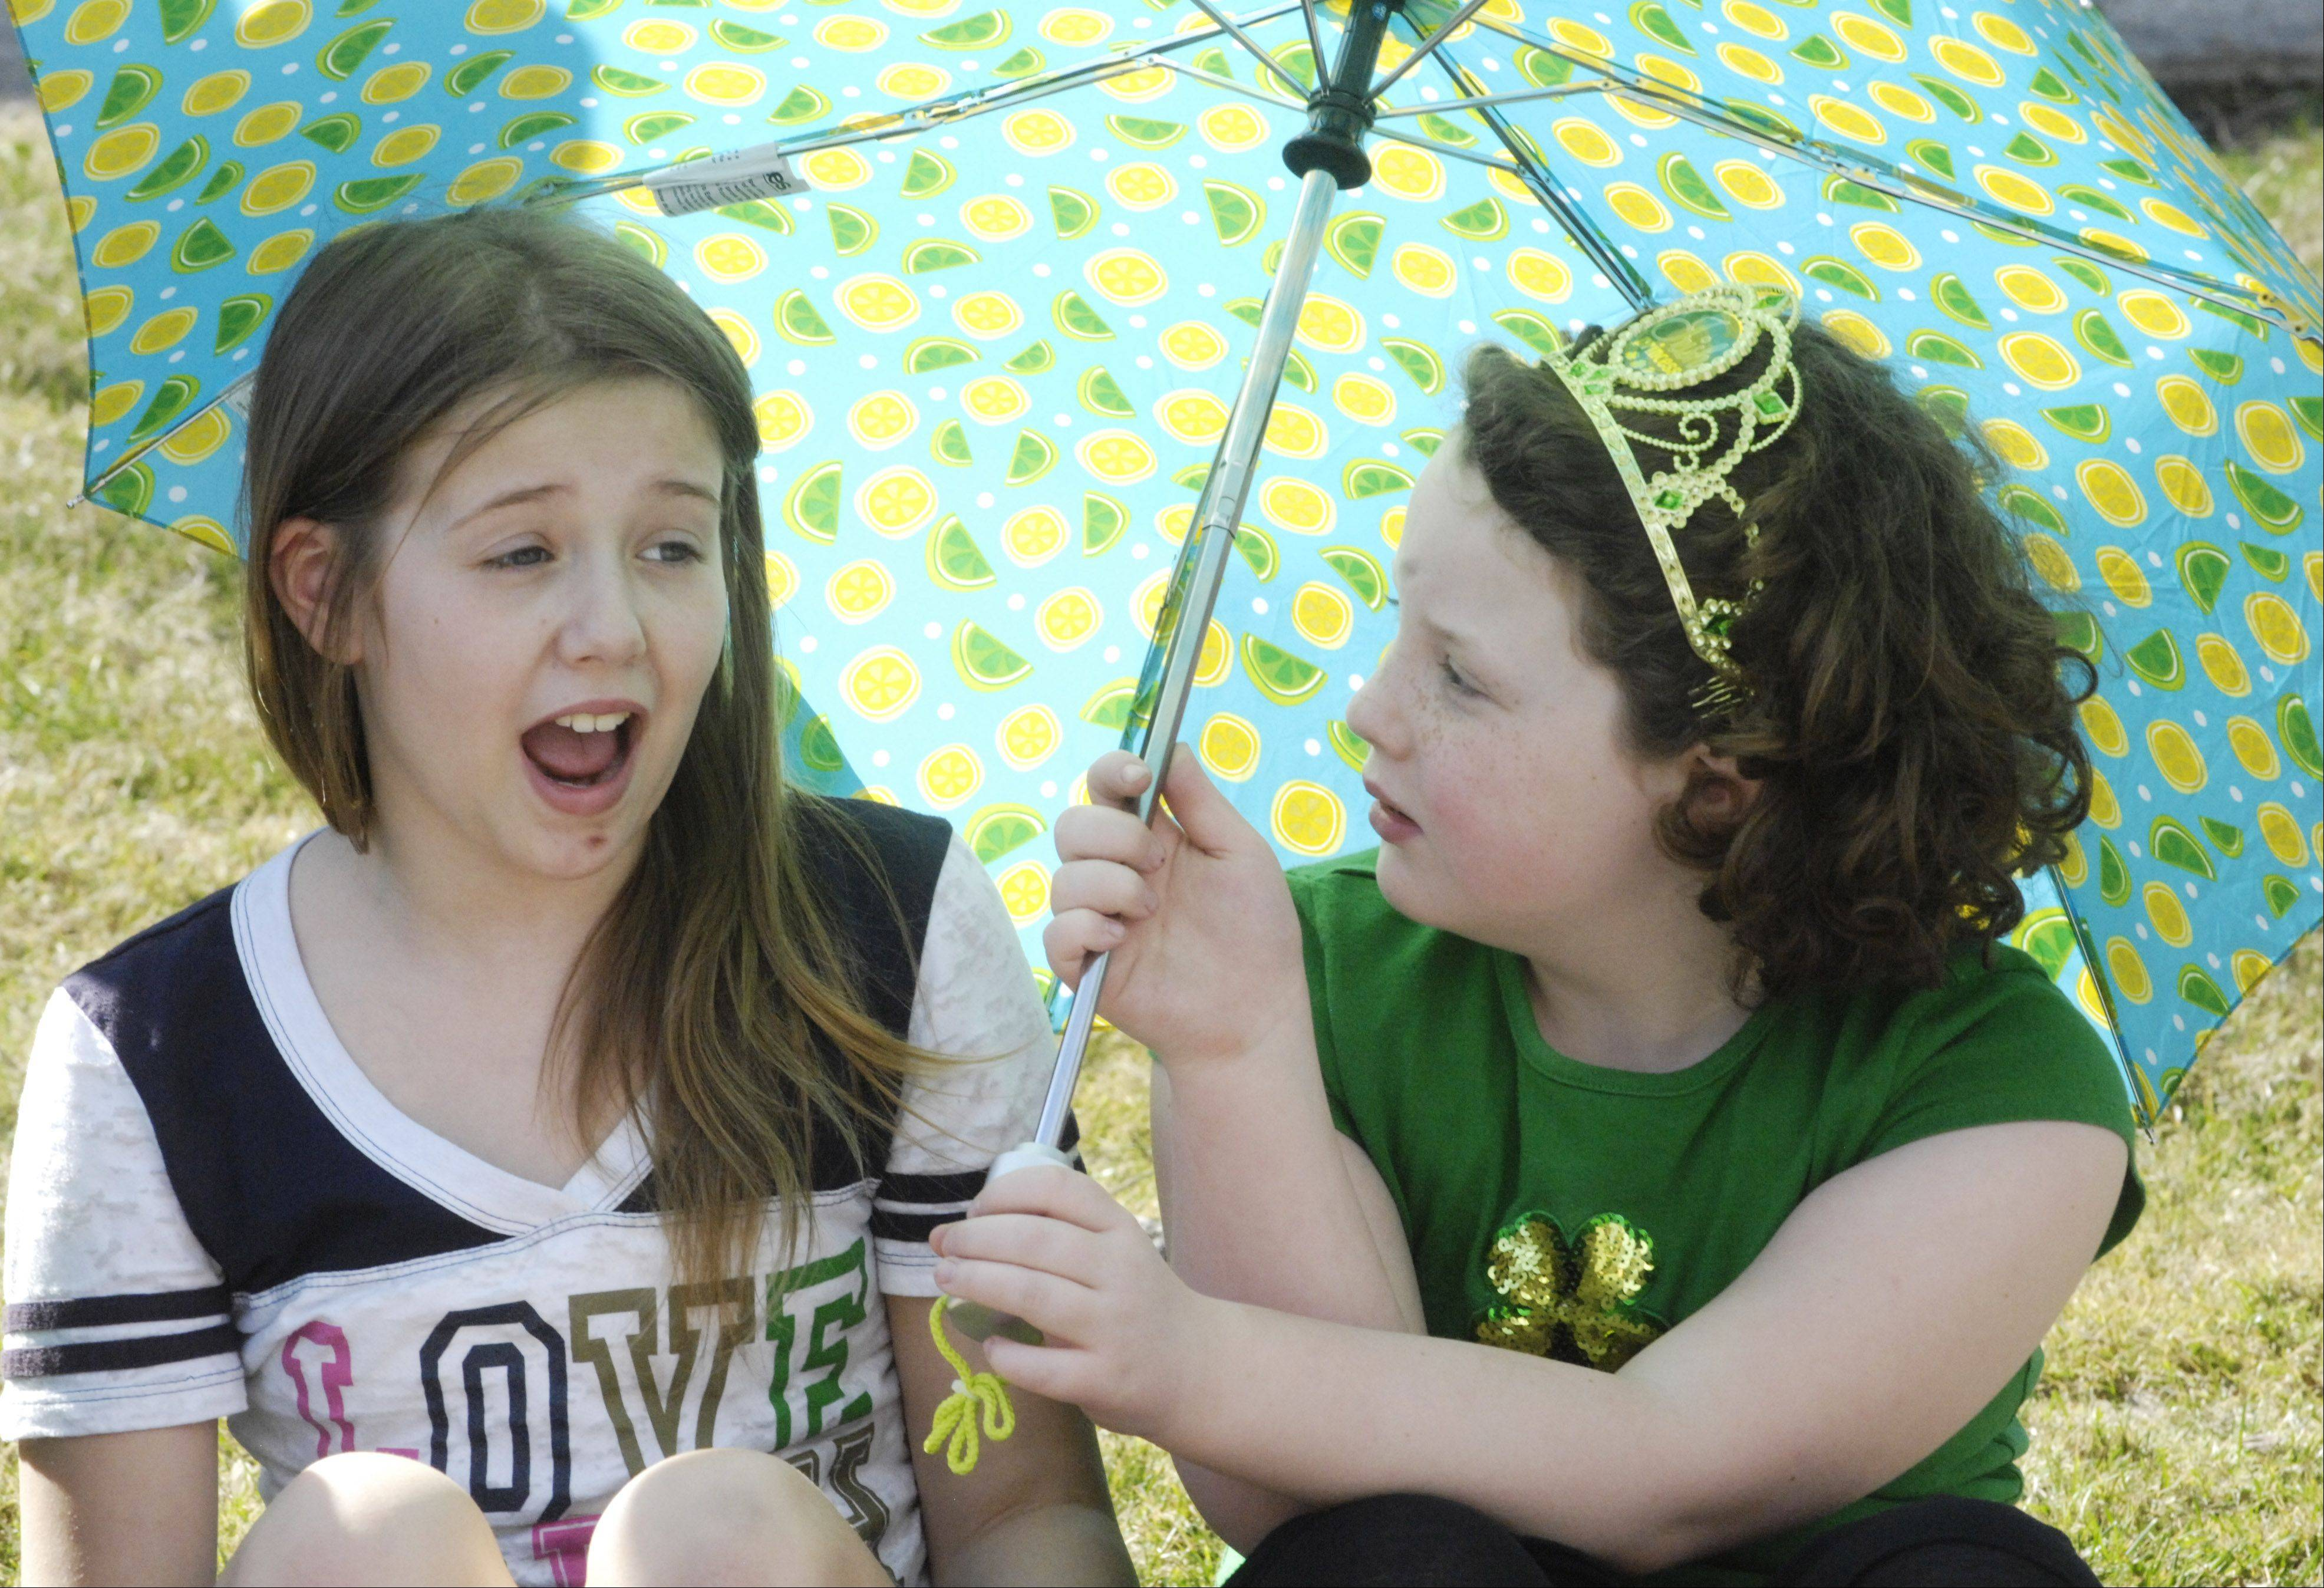 Rachel Jordan, 10, left, and Maddie Dolezal, 8, both of Cary, shade themselves from the warmth of the sun while awaiting the start of the Palatine St. Patrick's Day Parade Saturday.